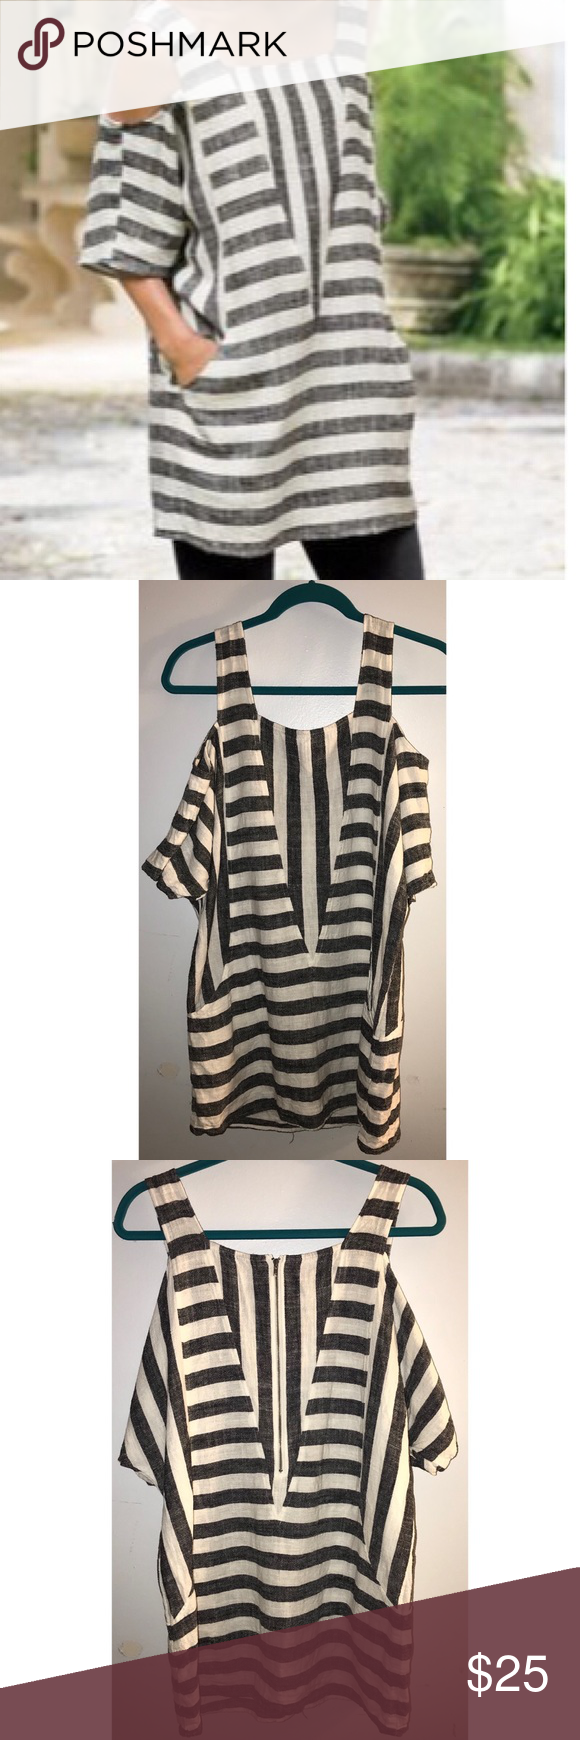 """Soft Surroundings striped cold shoulder top. Sz S White and black stripes. 52% Rayon 48% Linen. Feels like a Linen Top. Cold shoulder. HAS POCKETS! Zipper half way down the back. Size small which according to Soft Surroundings website fits a 6-8.  Measurements - laying flat: Bust - this style is sort of a dolman sleeve so I measured across the bust - 22"""" Length from top of shoulder down - 30"""" Soft Surroundings Tops"""